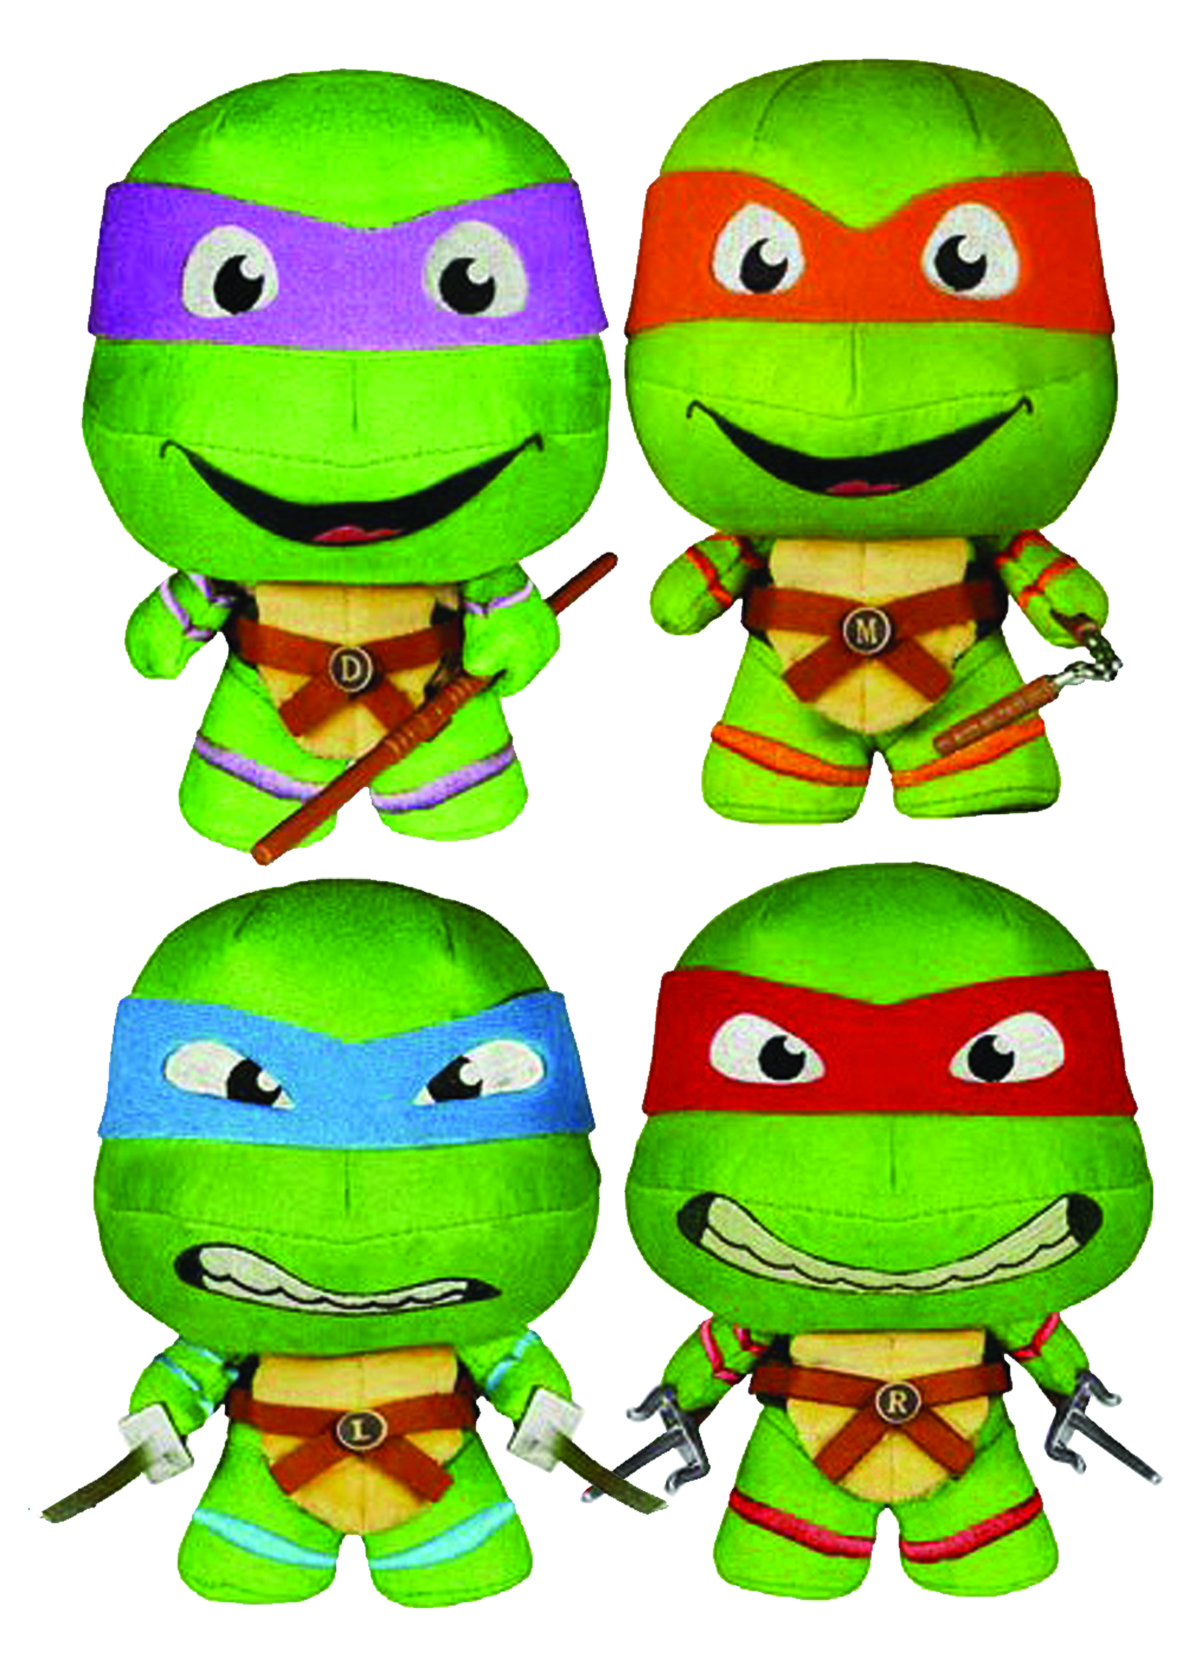 FABRIKATIONS TMNT MICHELANGELO SOFT SCULPT PLUSH FIG